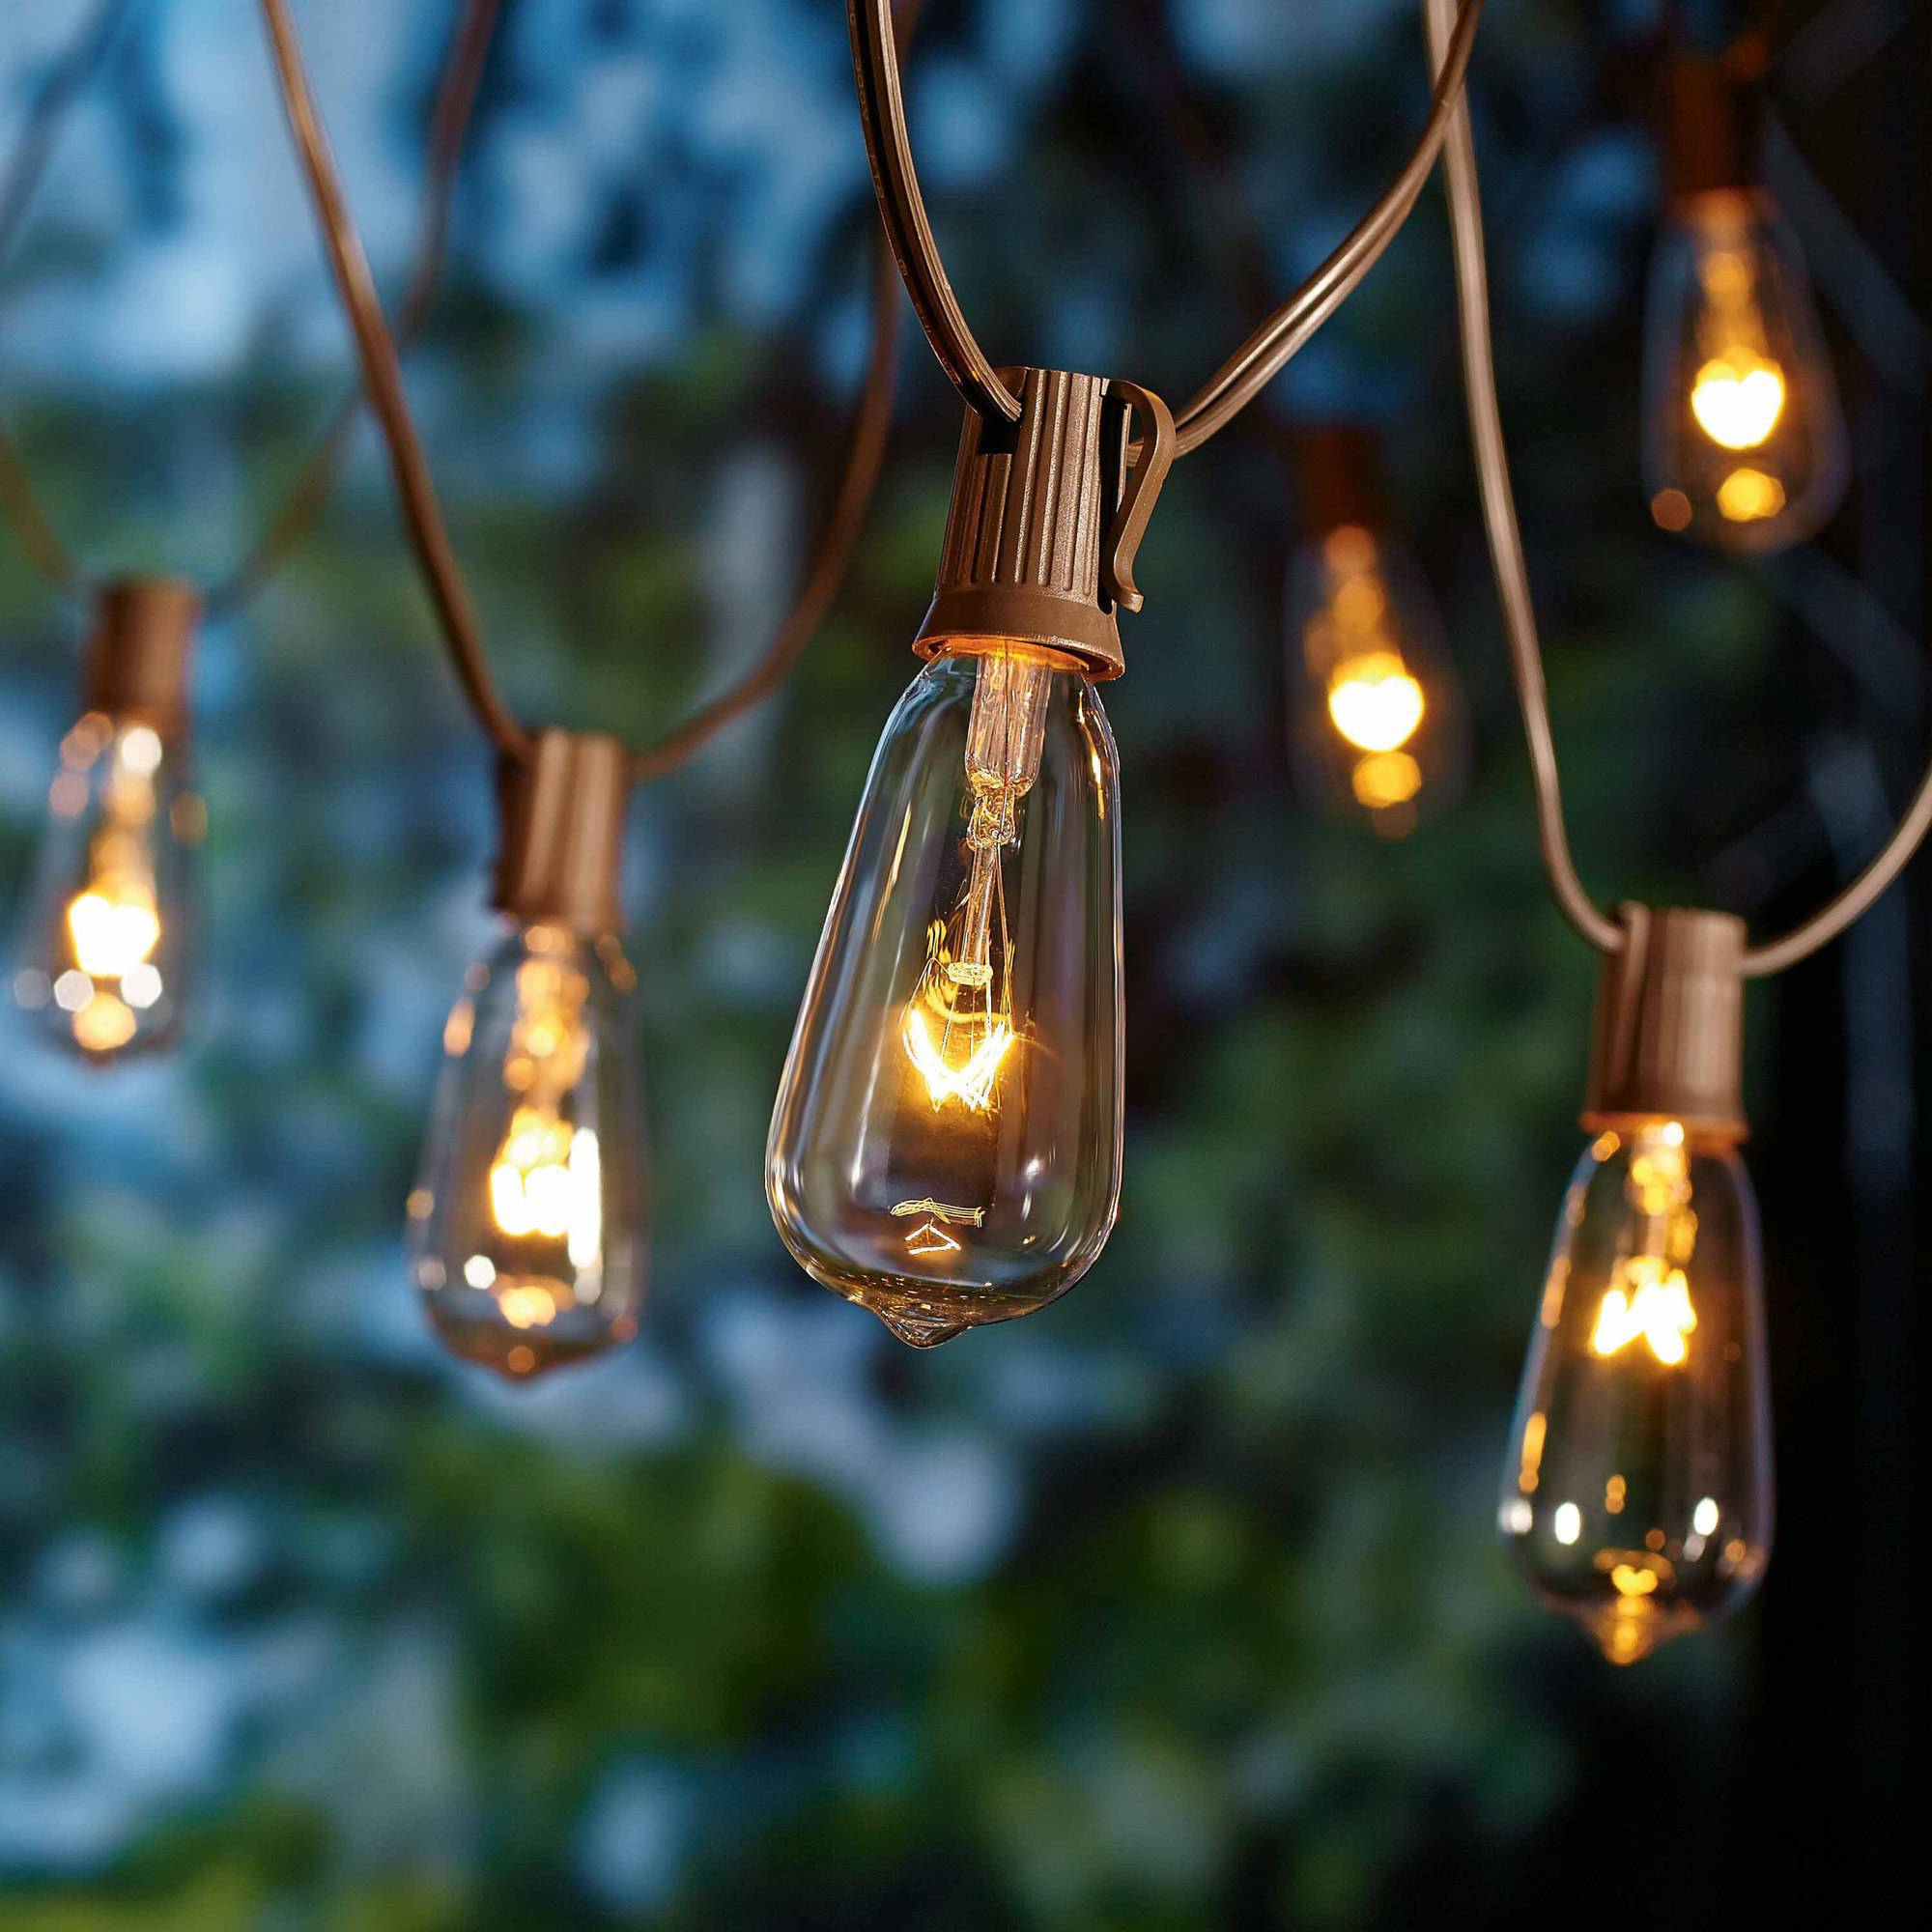 Light Bulbs String: Better Homes and Gardens Glass Edison String Lights, 10 Count - Walmart.com,Lighting